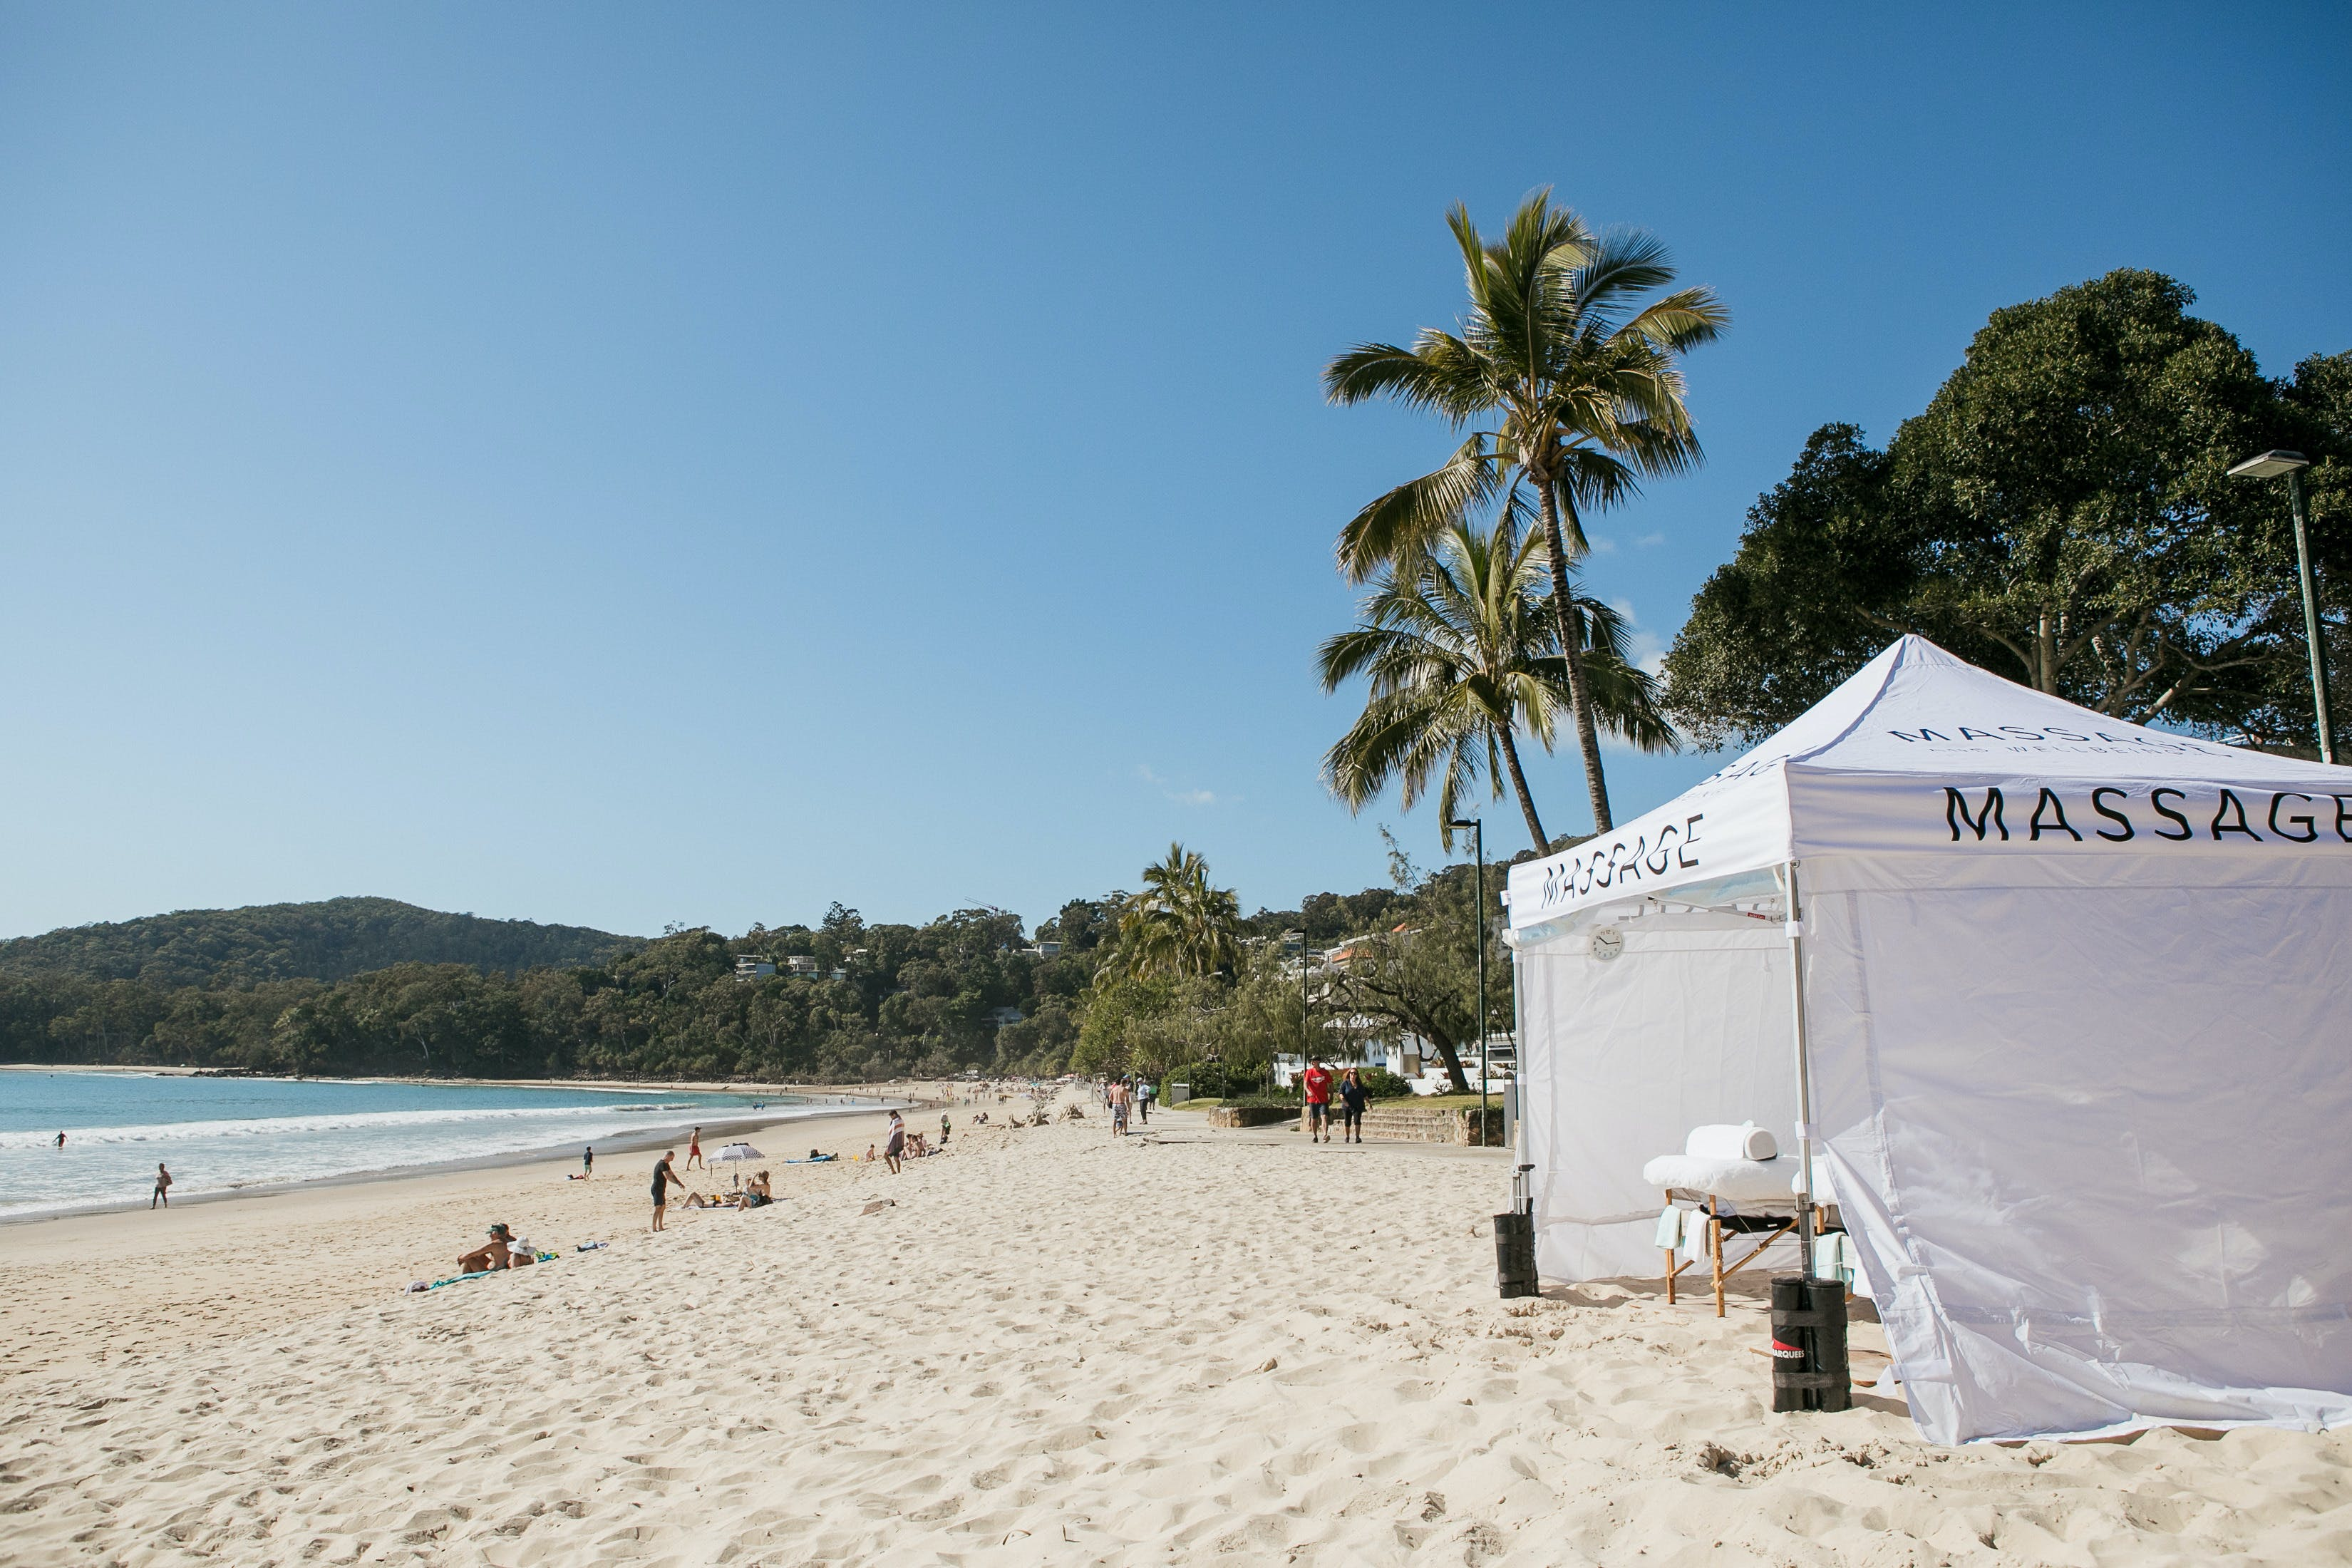 Noosa Beach Massage Logo and Images